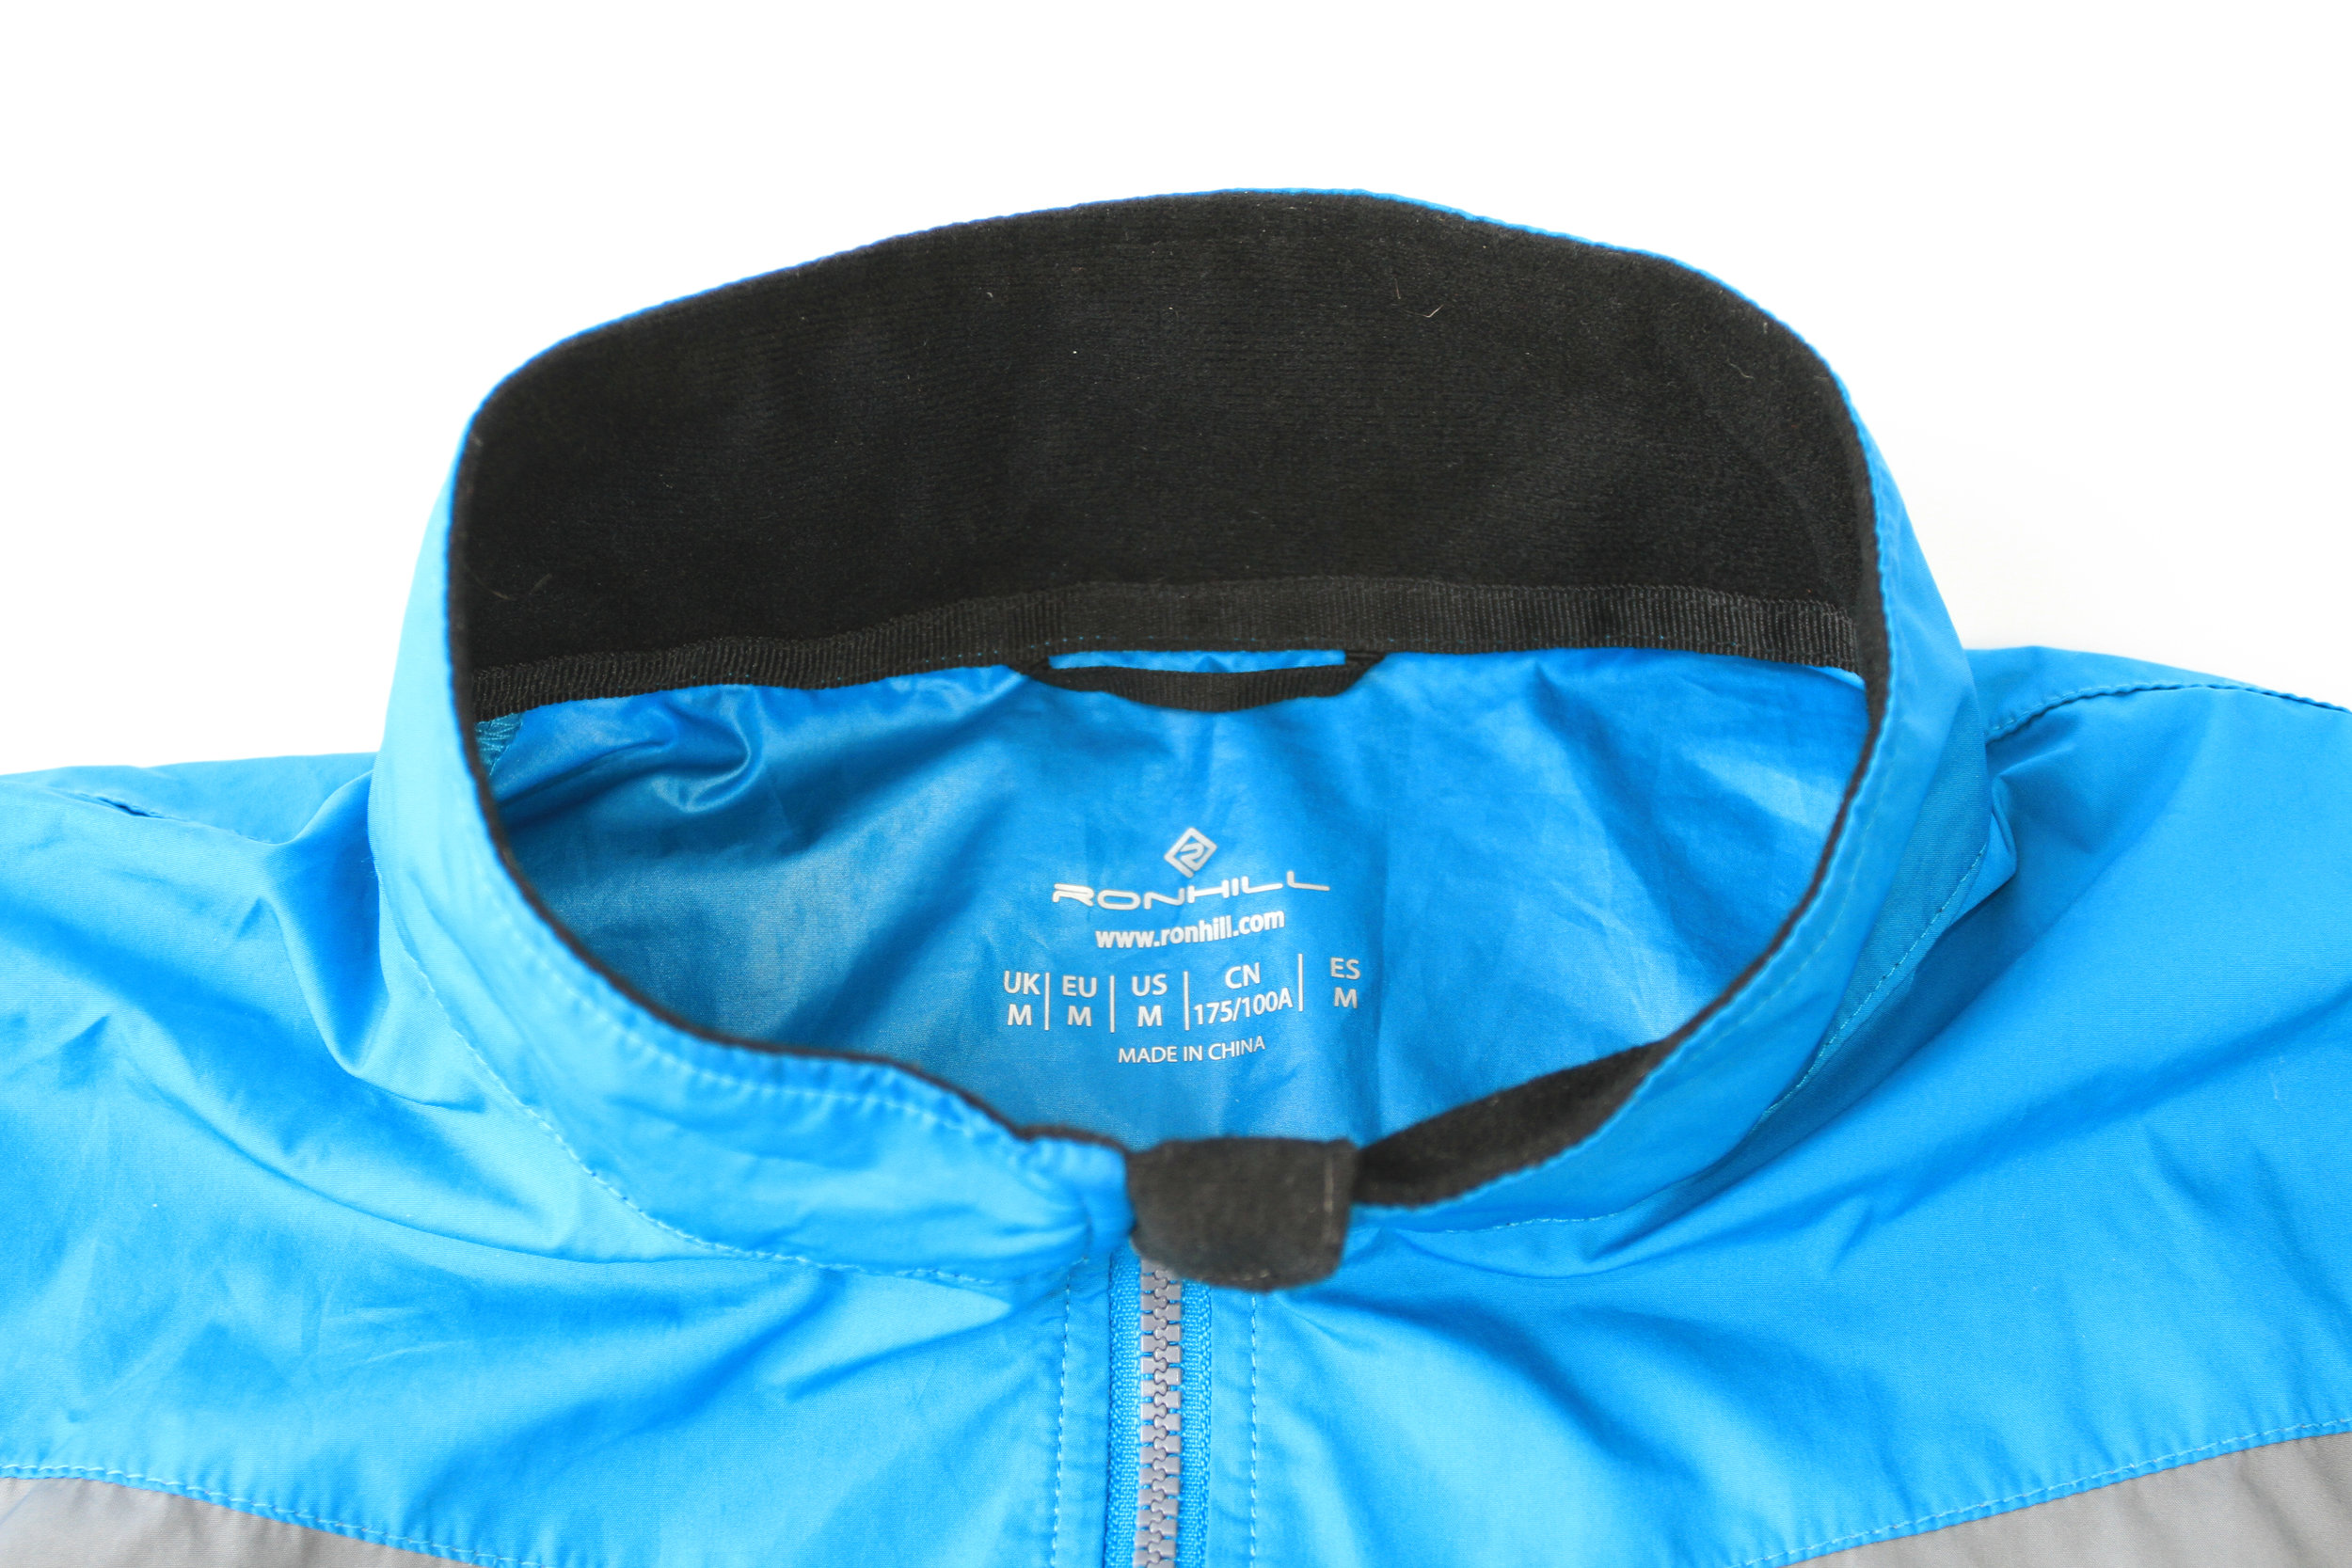 Ronhill newest jacket-7.JPG